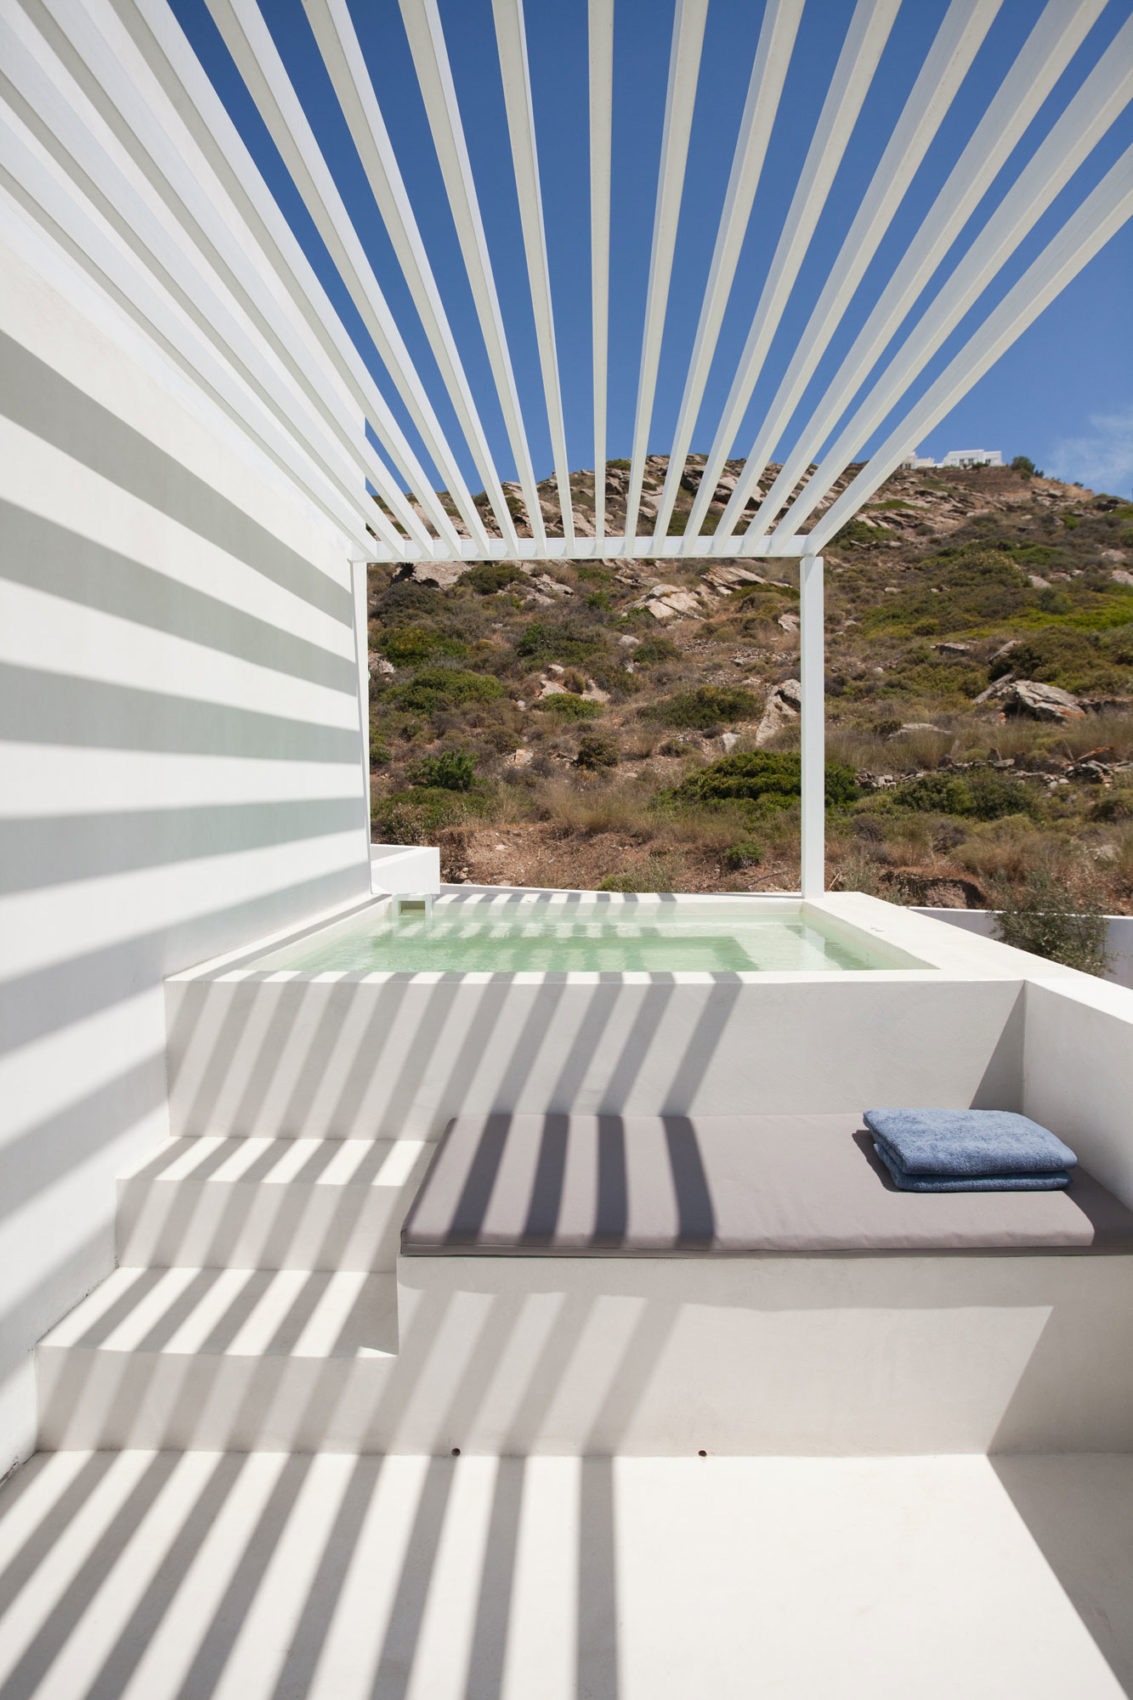 Relux Ios Hotel by A31 ARCHITECTURE (15)